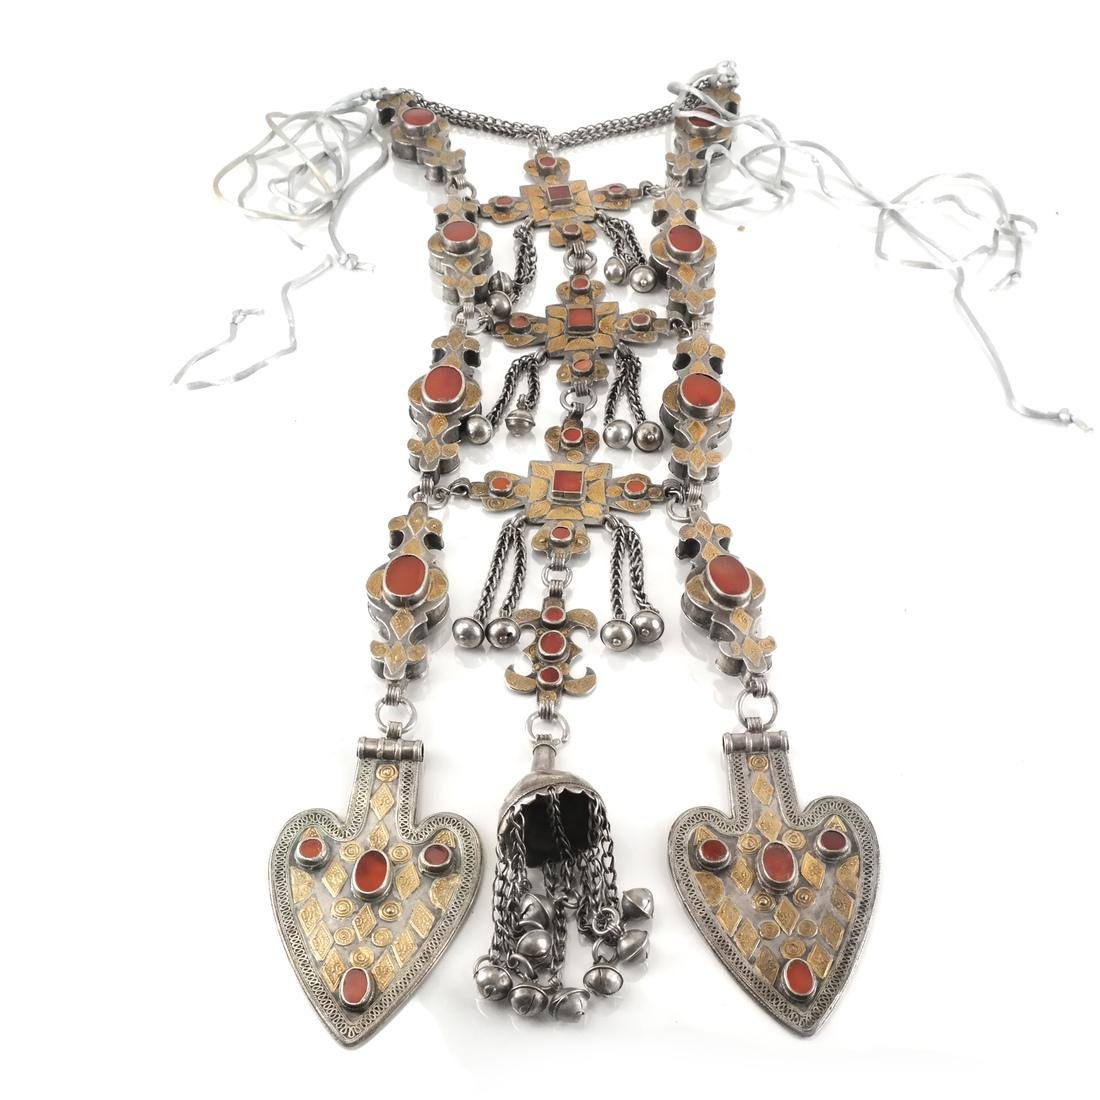 Ornate Silver Afghan/Central Asian Jeweled Necklace